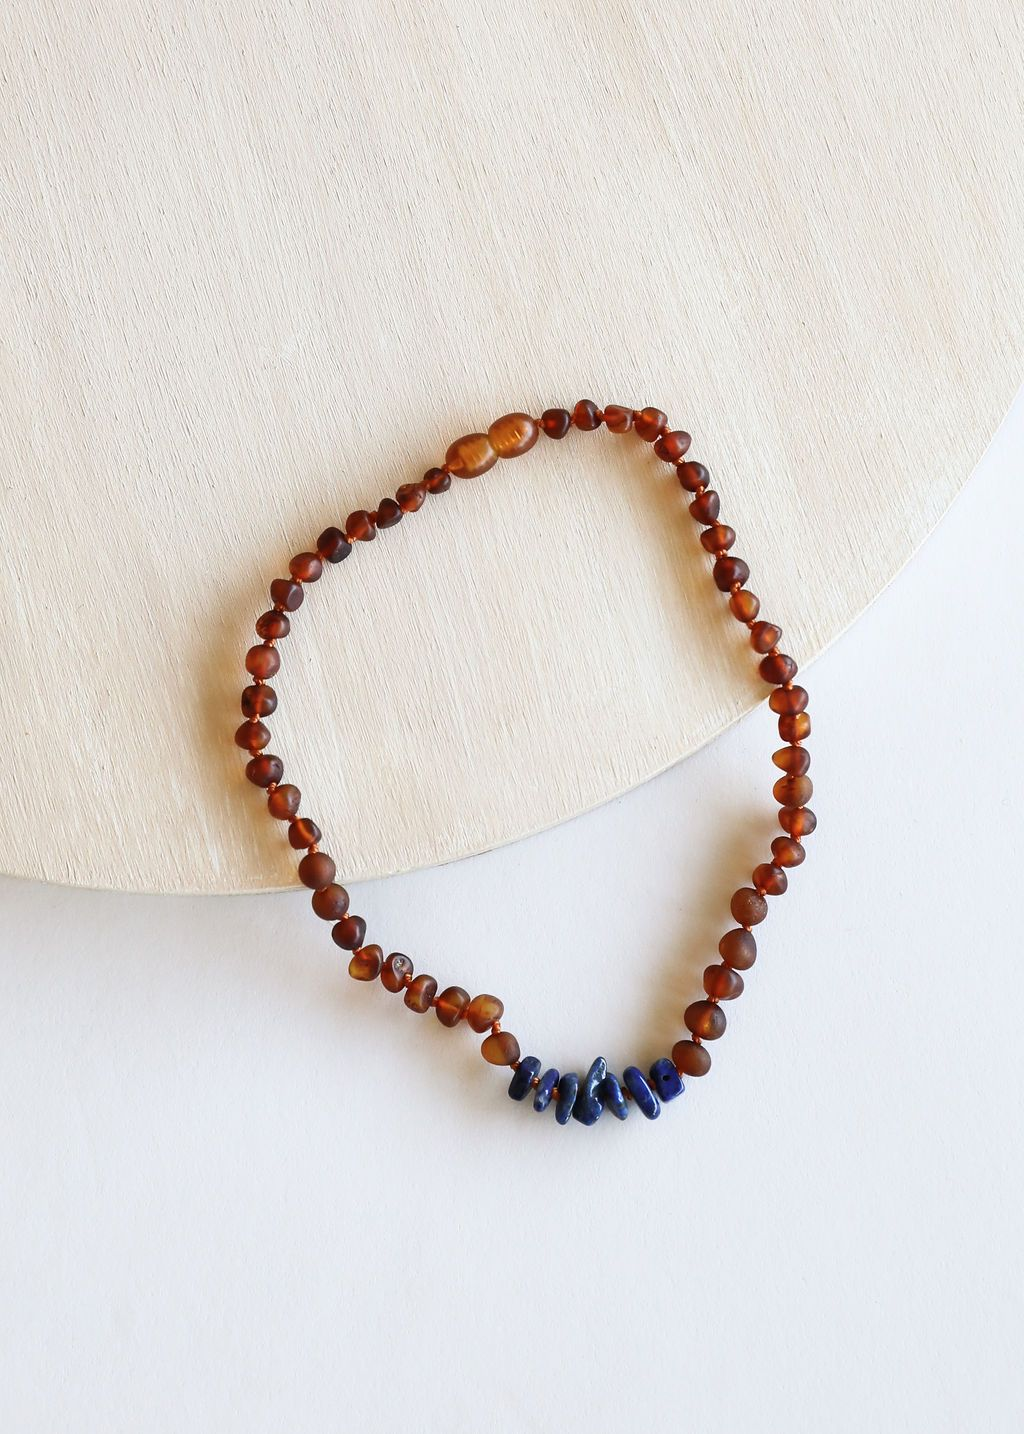 Canyon Leaf - Baltic Amber Necklace - Lapis Stones - 12